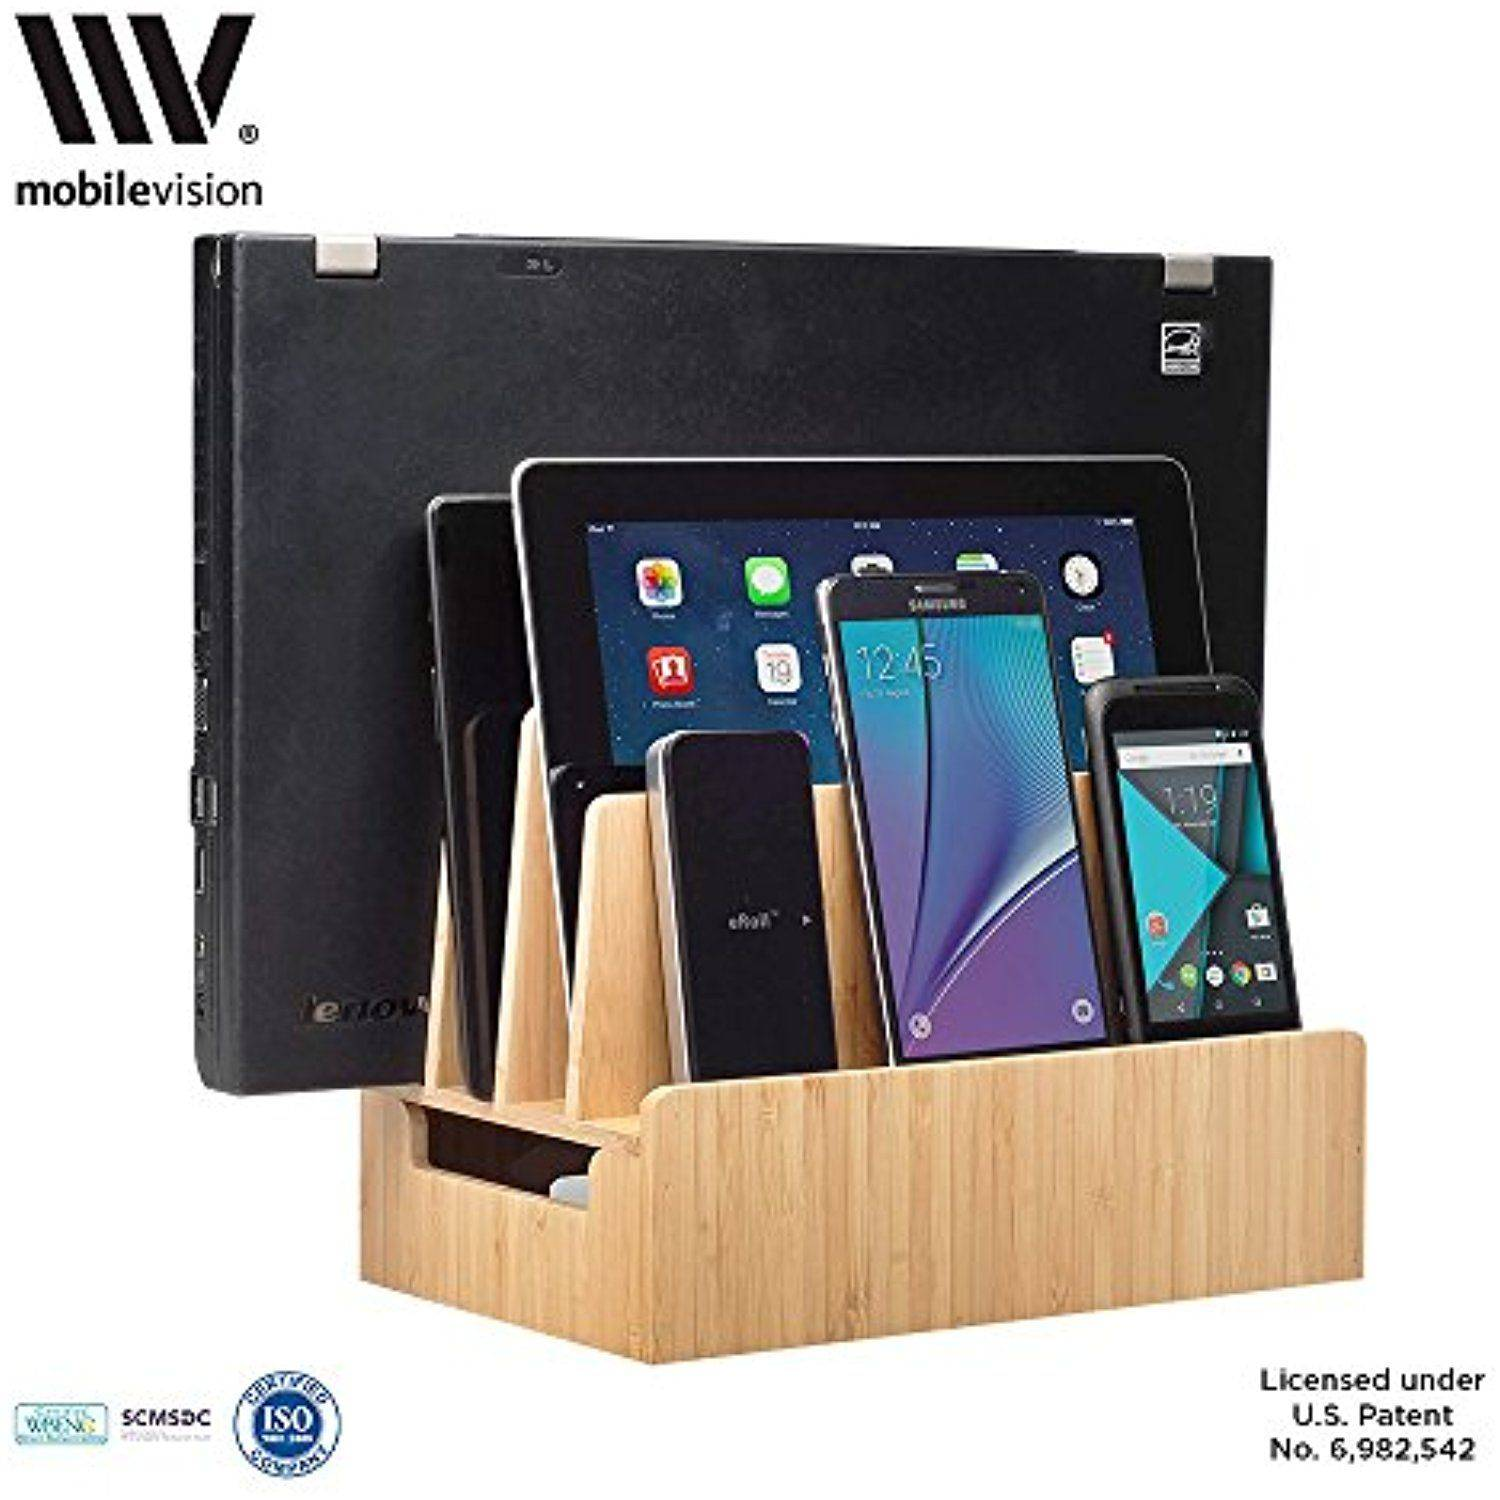 New Diy Charging Station organizer Inspirational Mobilevision Bamboo Charging Station Accessories